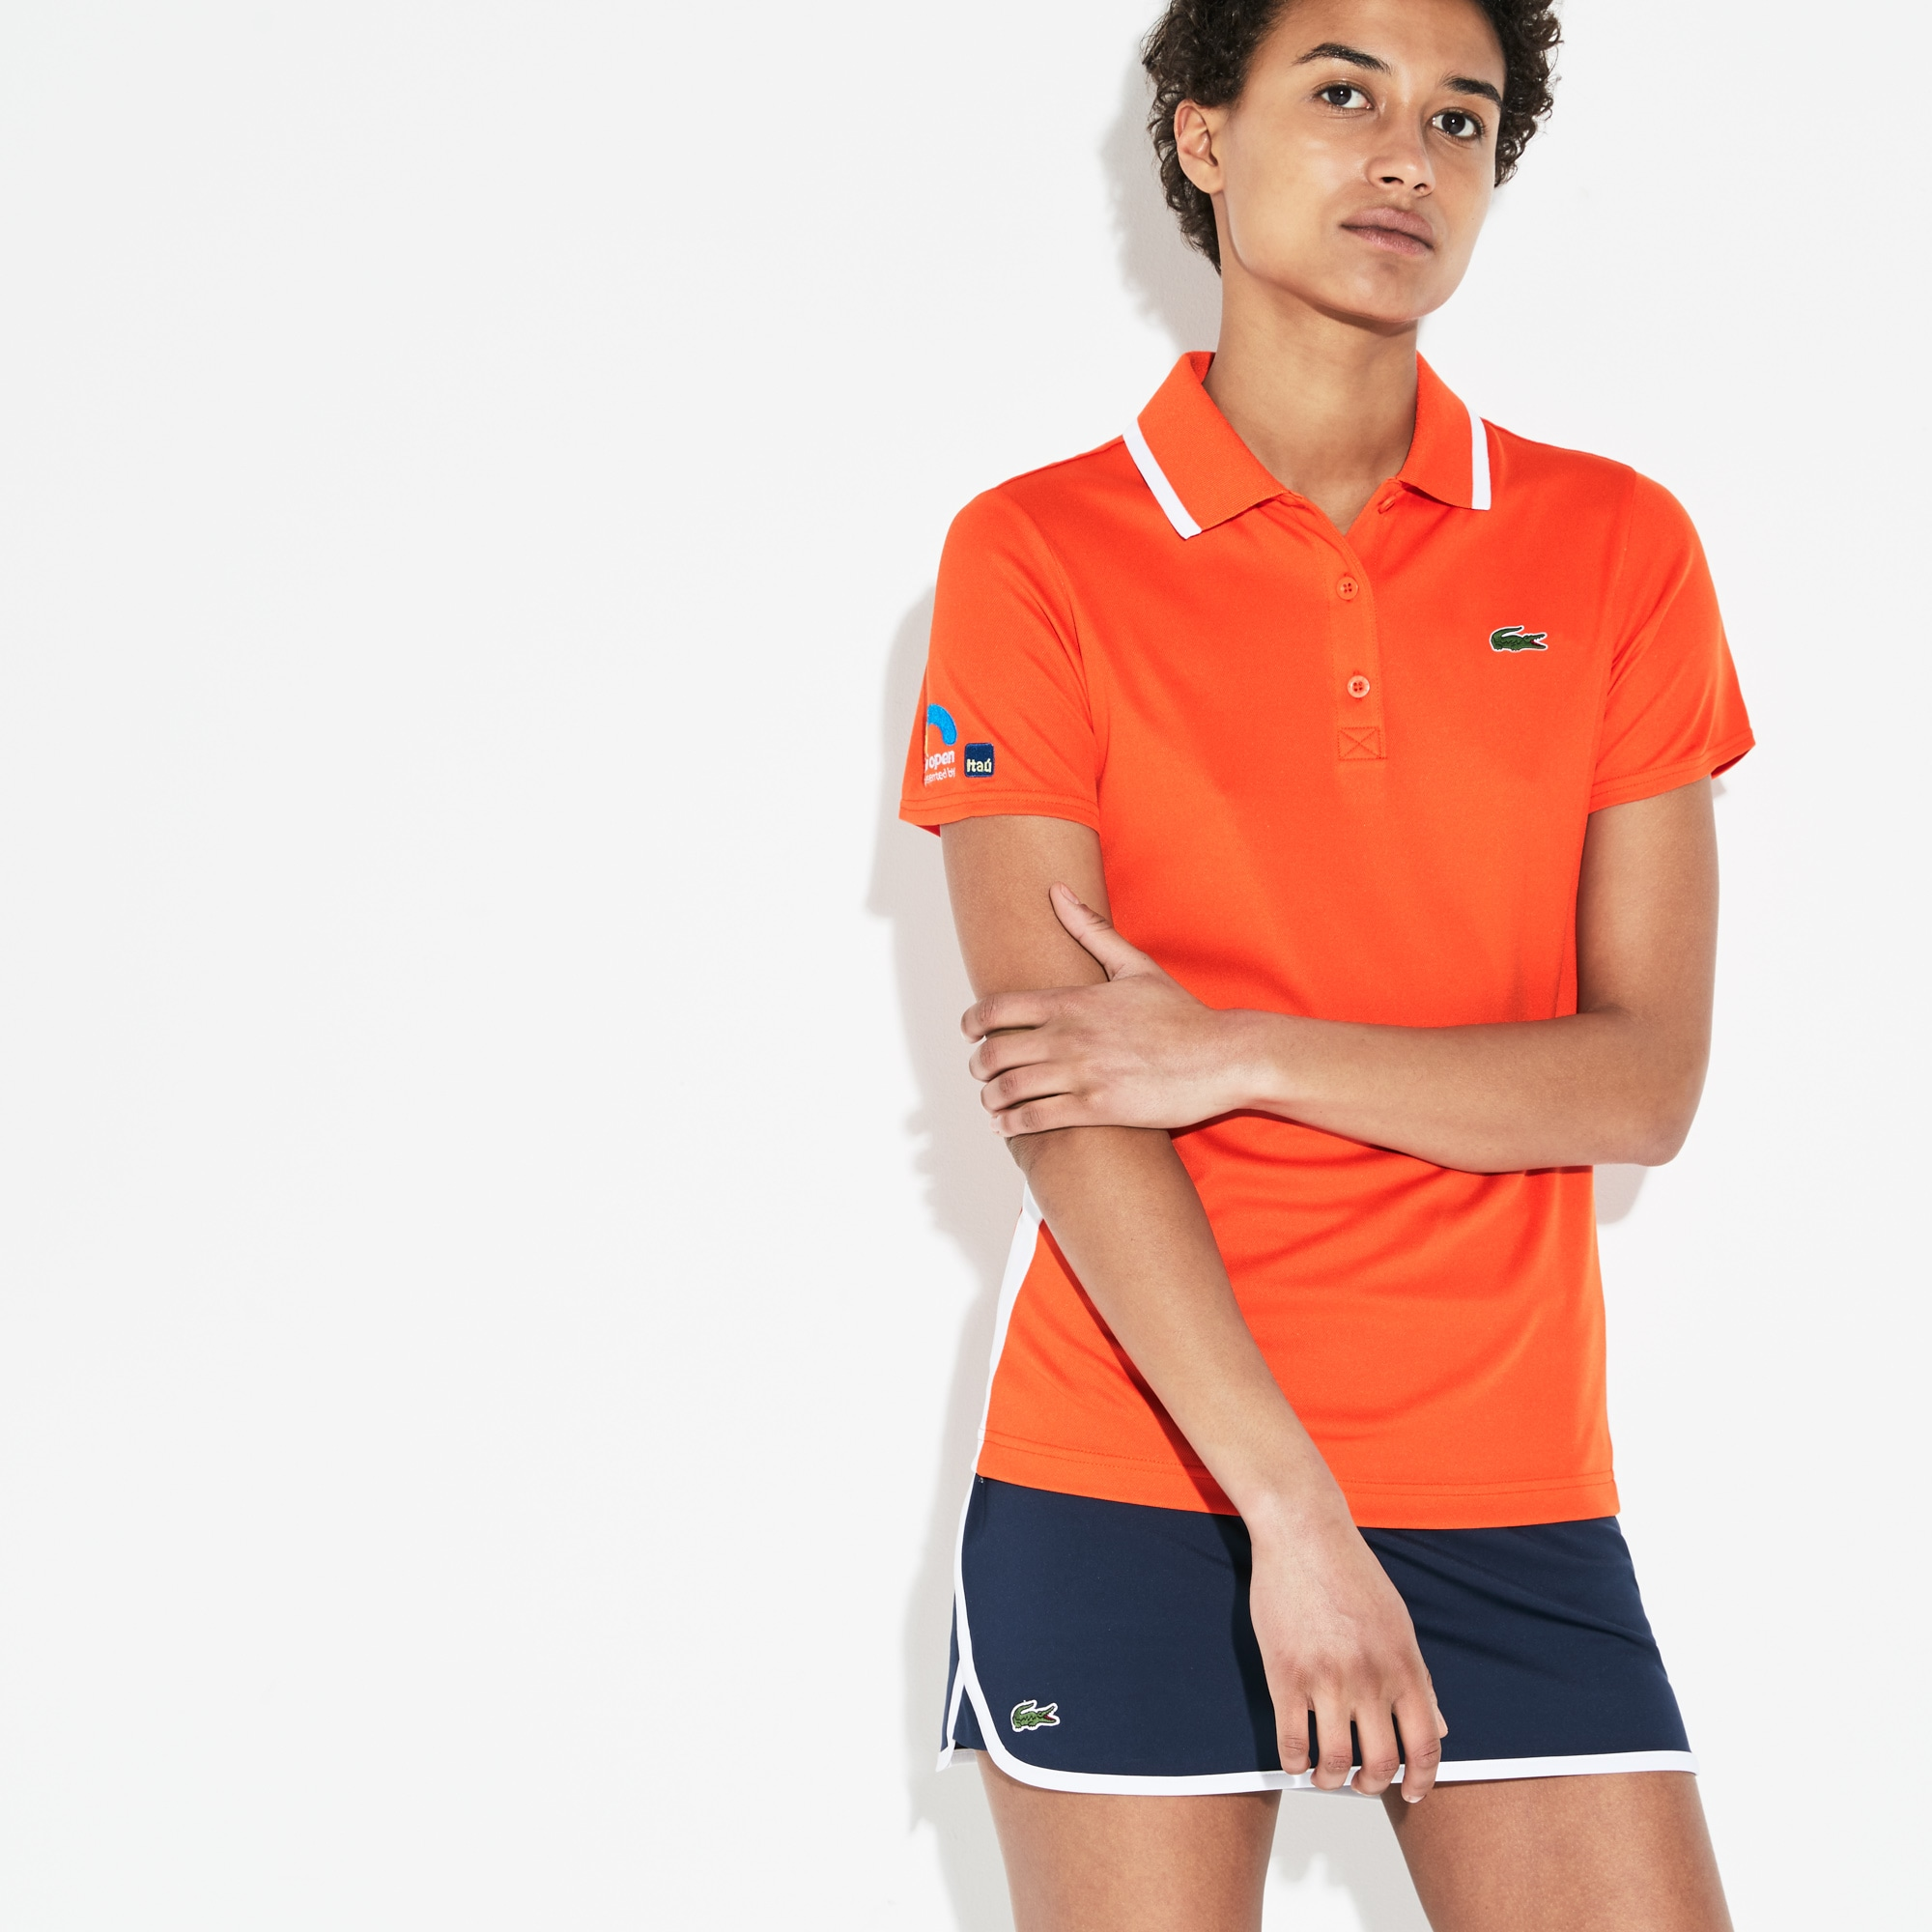 Women's SPORT Miami Open Oversized Croc Tech Piqué Tennis Polo